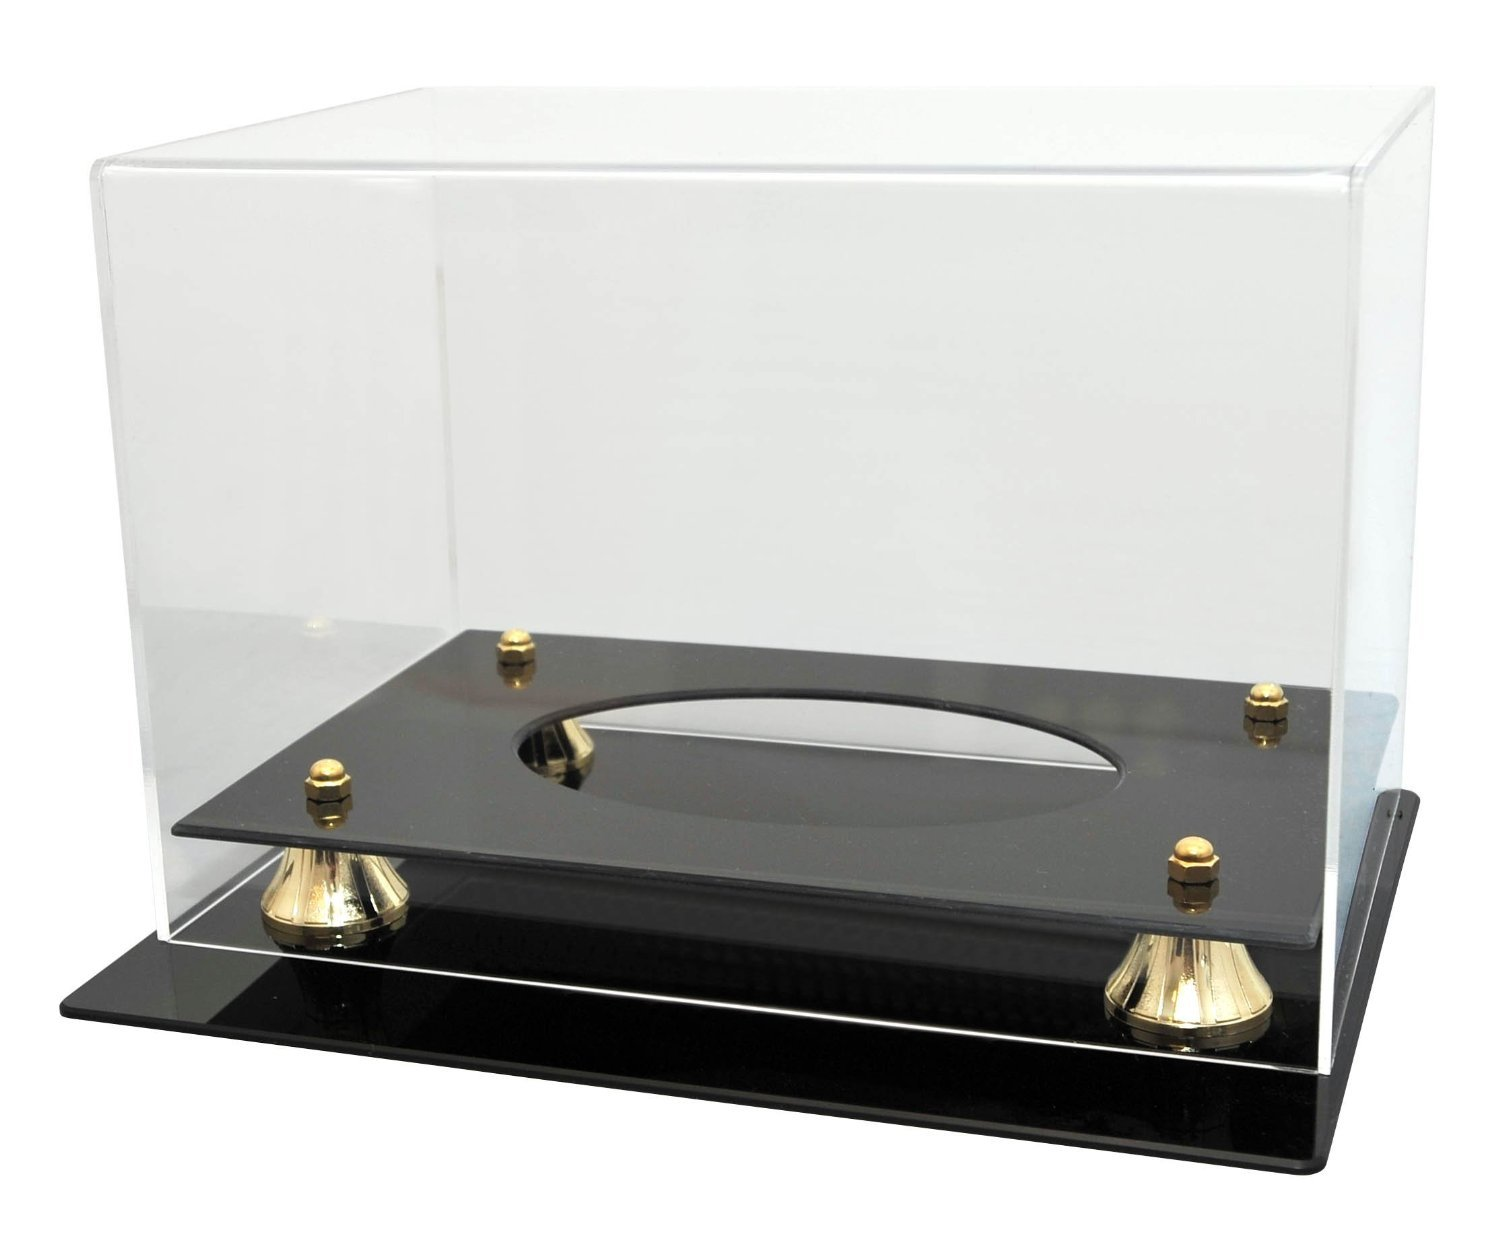 Football Display Case Holder 98% UV Protection Acrylic cover ALL 4 sides visible by Collectible Supplies (Image #2)